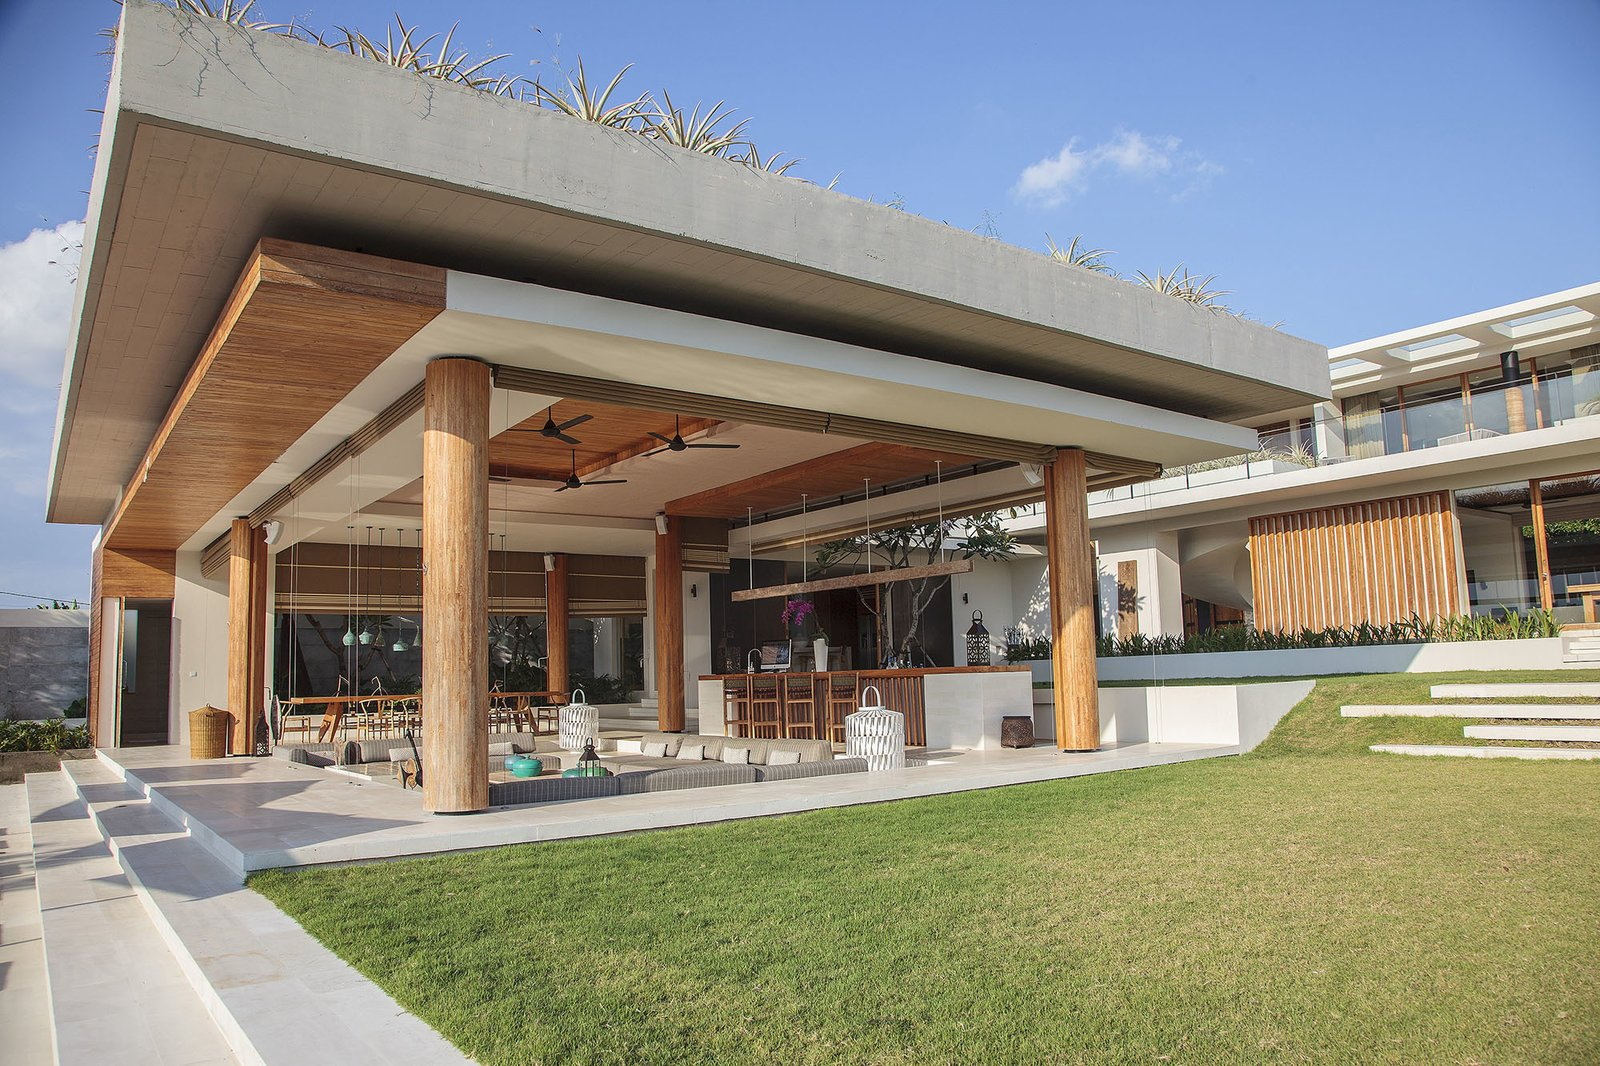 With its cutting-edge design, clean lines, local stone and honey-hued wood interiors, The Iman Villa is sophisticated choice for large groups of families. The villas has a lovely rooftop terrace that overlooks rice paddies, a swimming pool and children's wading pool and a luxurious sunken Jacuzzi.